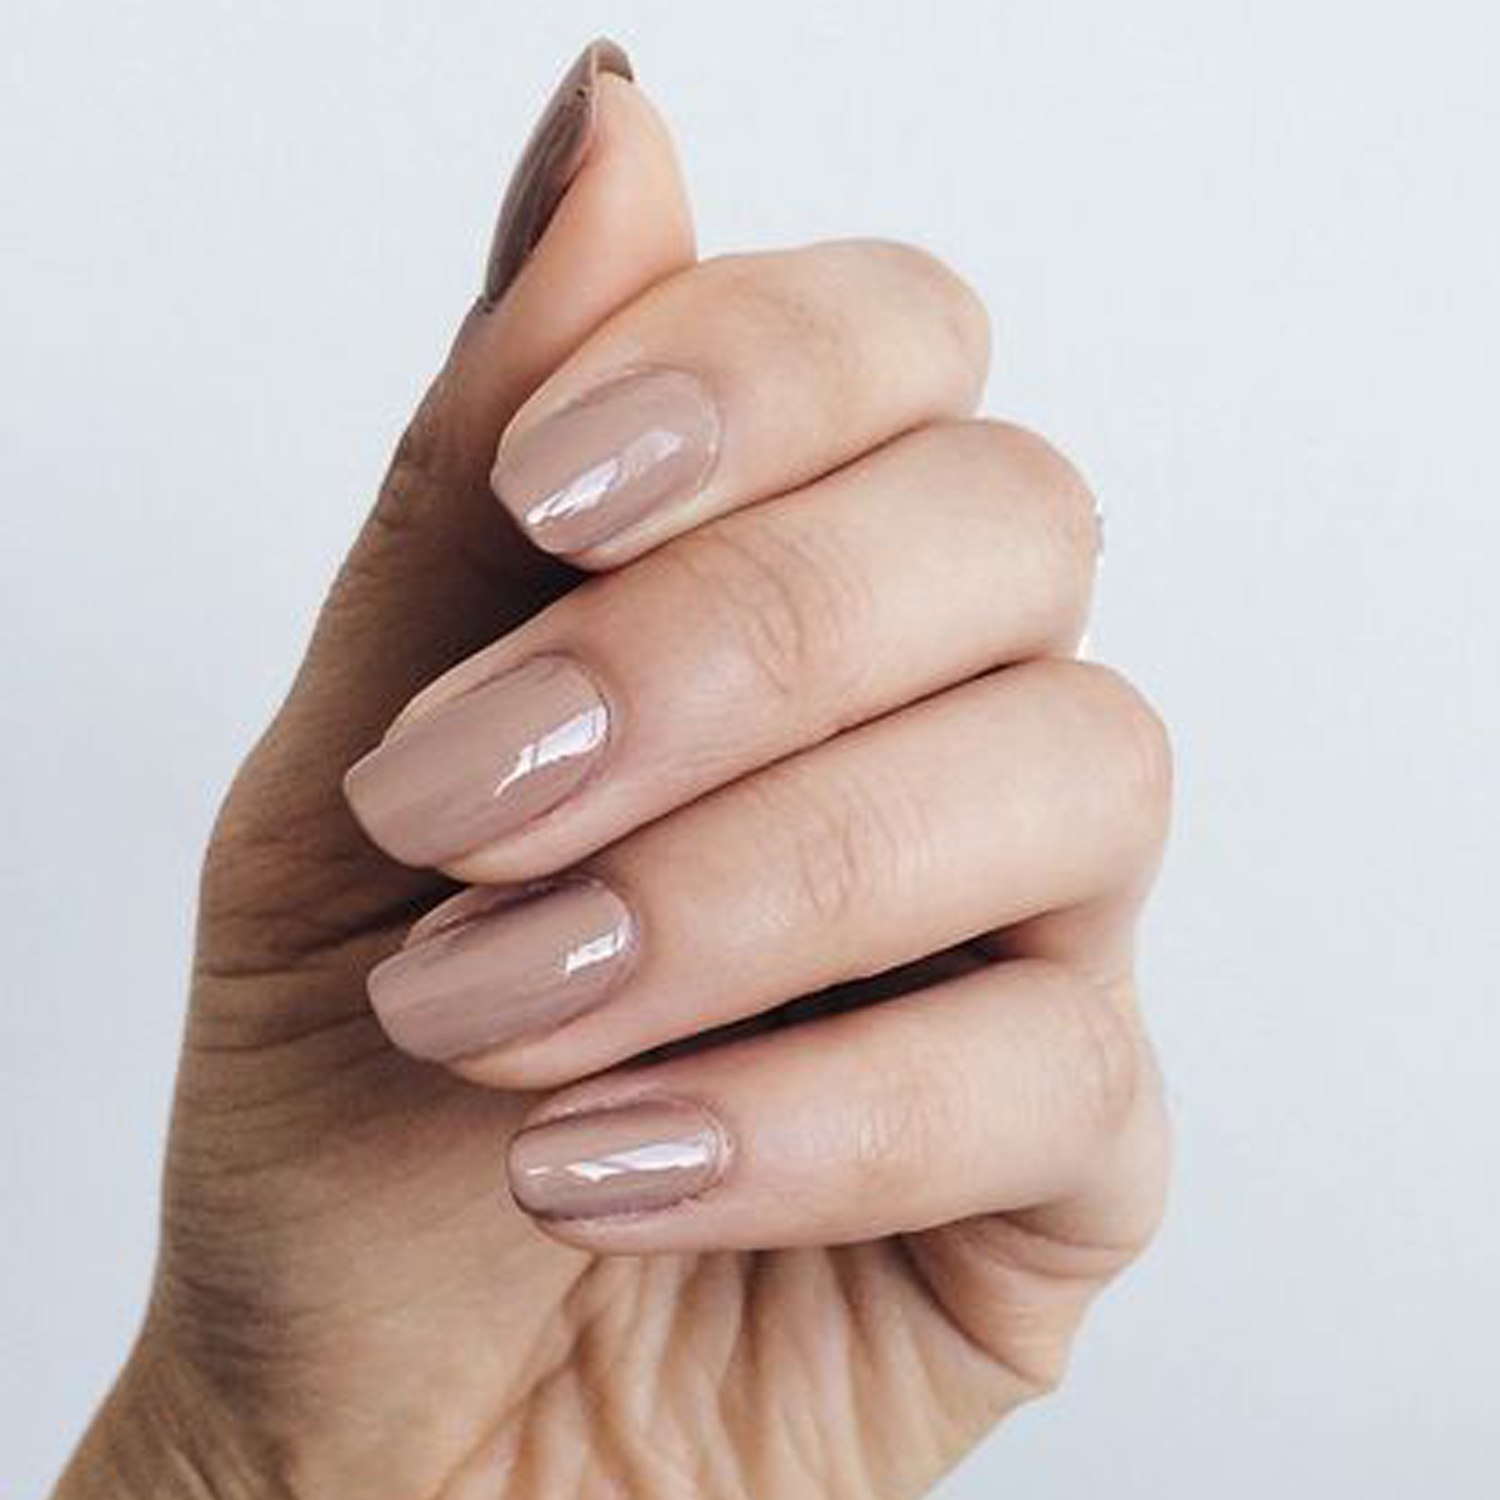 Squoval Or Square Oval Nails Are A Shape With Softened Corners It S Flattering Style That Tends To Suit All Nail Shapes And Sizes